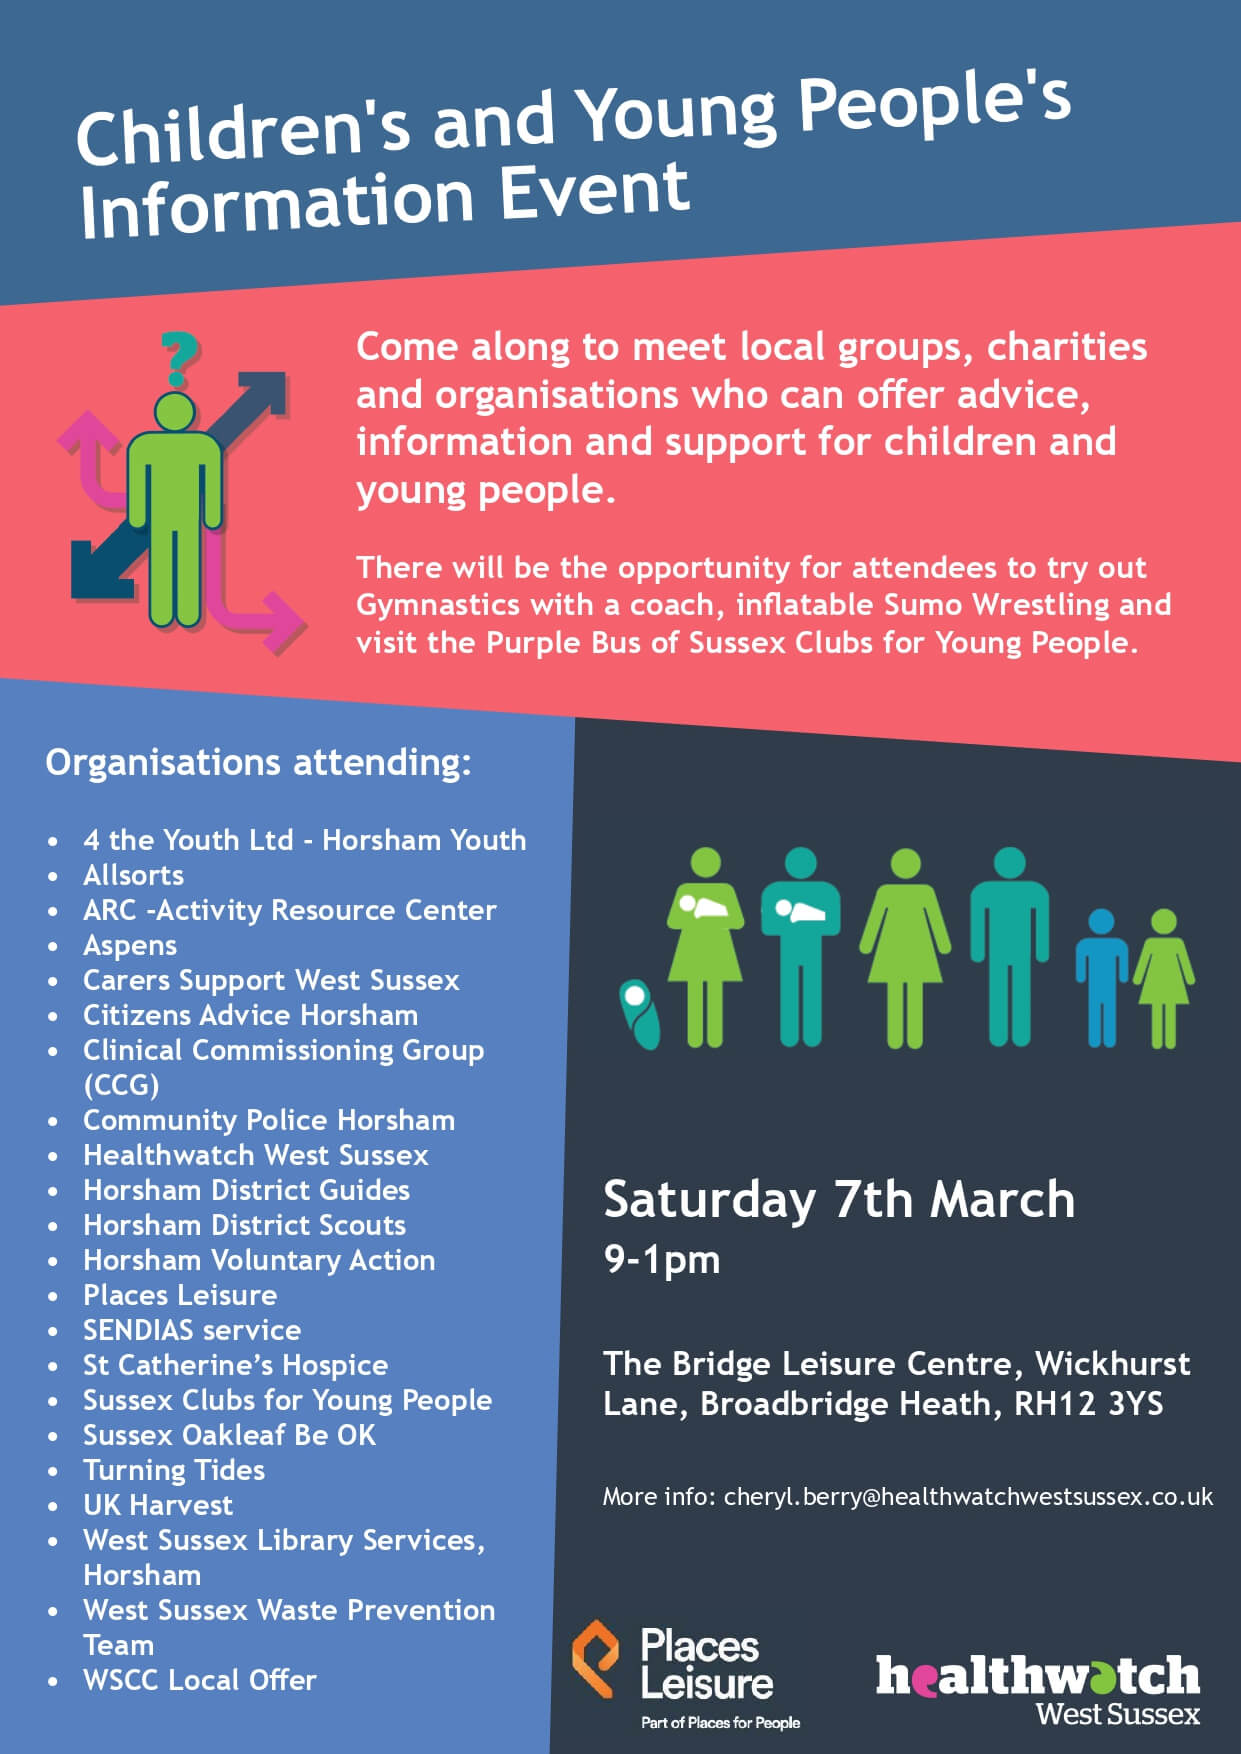 Children's and Young People's Information Event – Saturday, 7 March